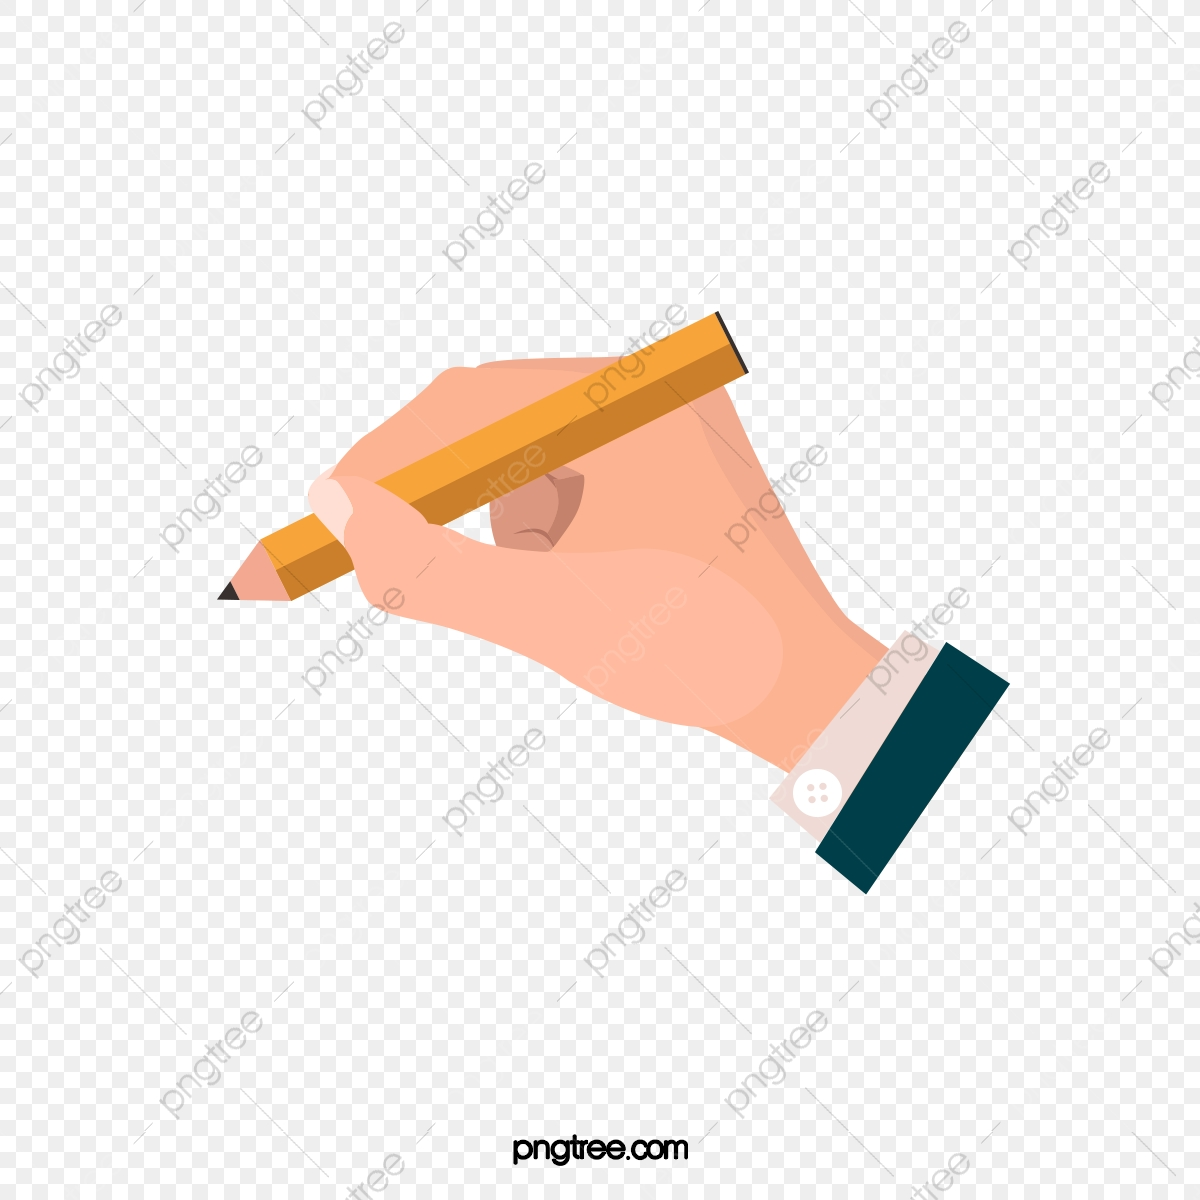 Hand Png Image With Pen – Download transparent pen png for free on pngkey.com.